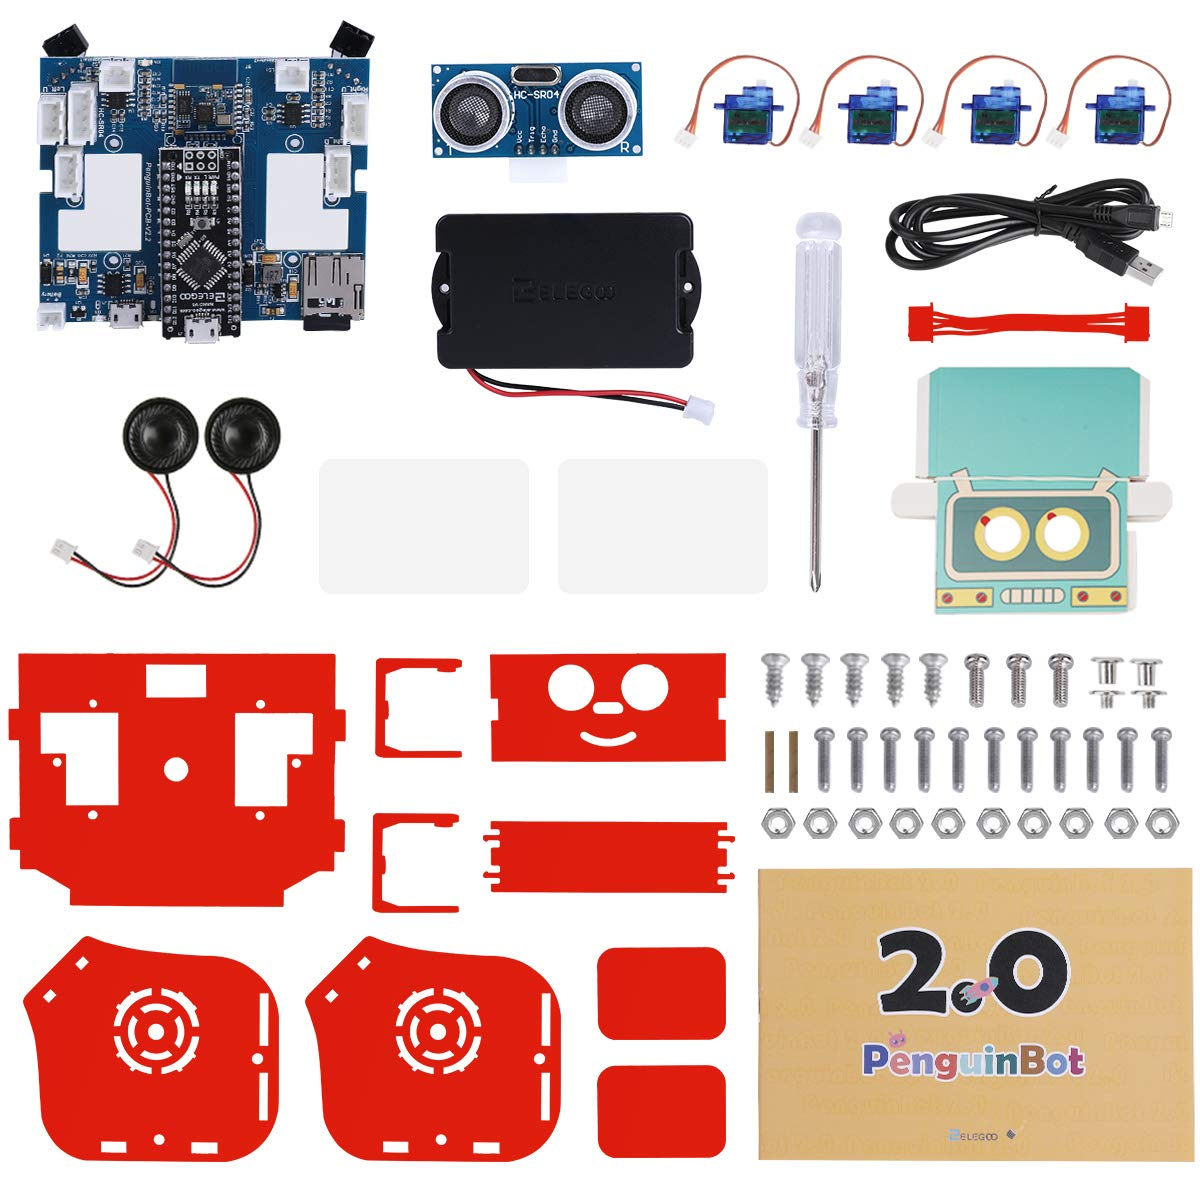 ELEGOO Penguin Bot Biped Robot Kit for Arduino Project with Assembling Tutorial,STEM Kit for Hobbyists, STEM Toys for Kids and Adults, Red Version by ELEGOO (Image #7)